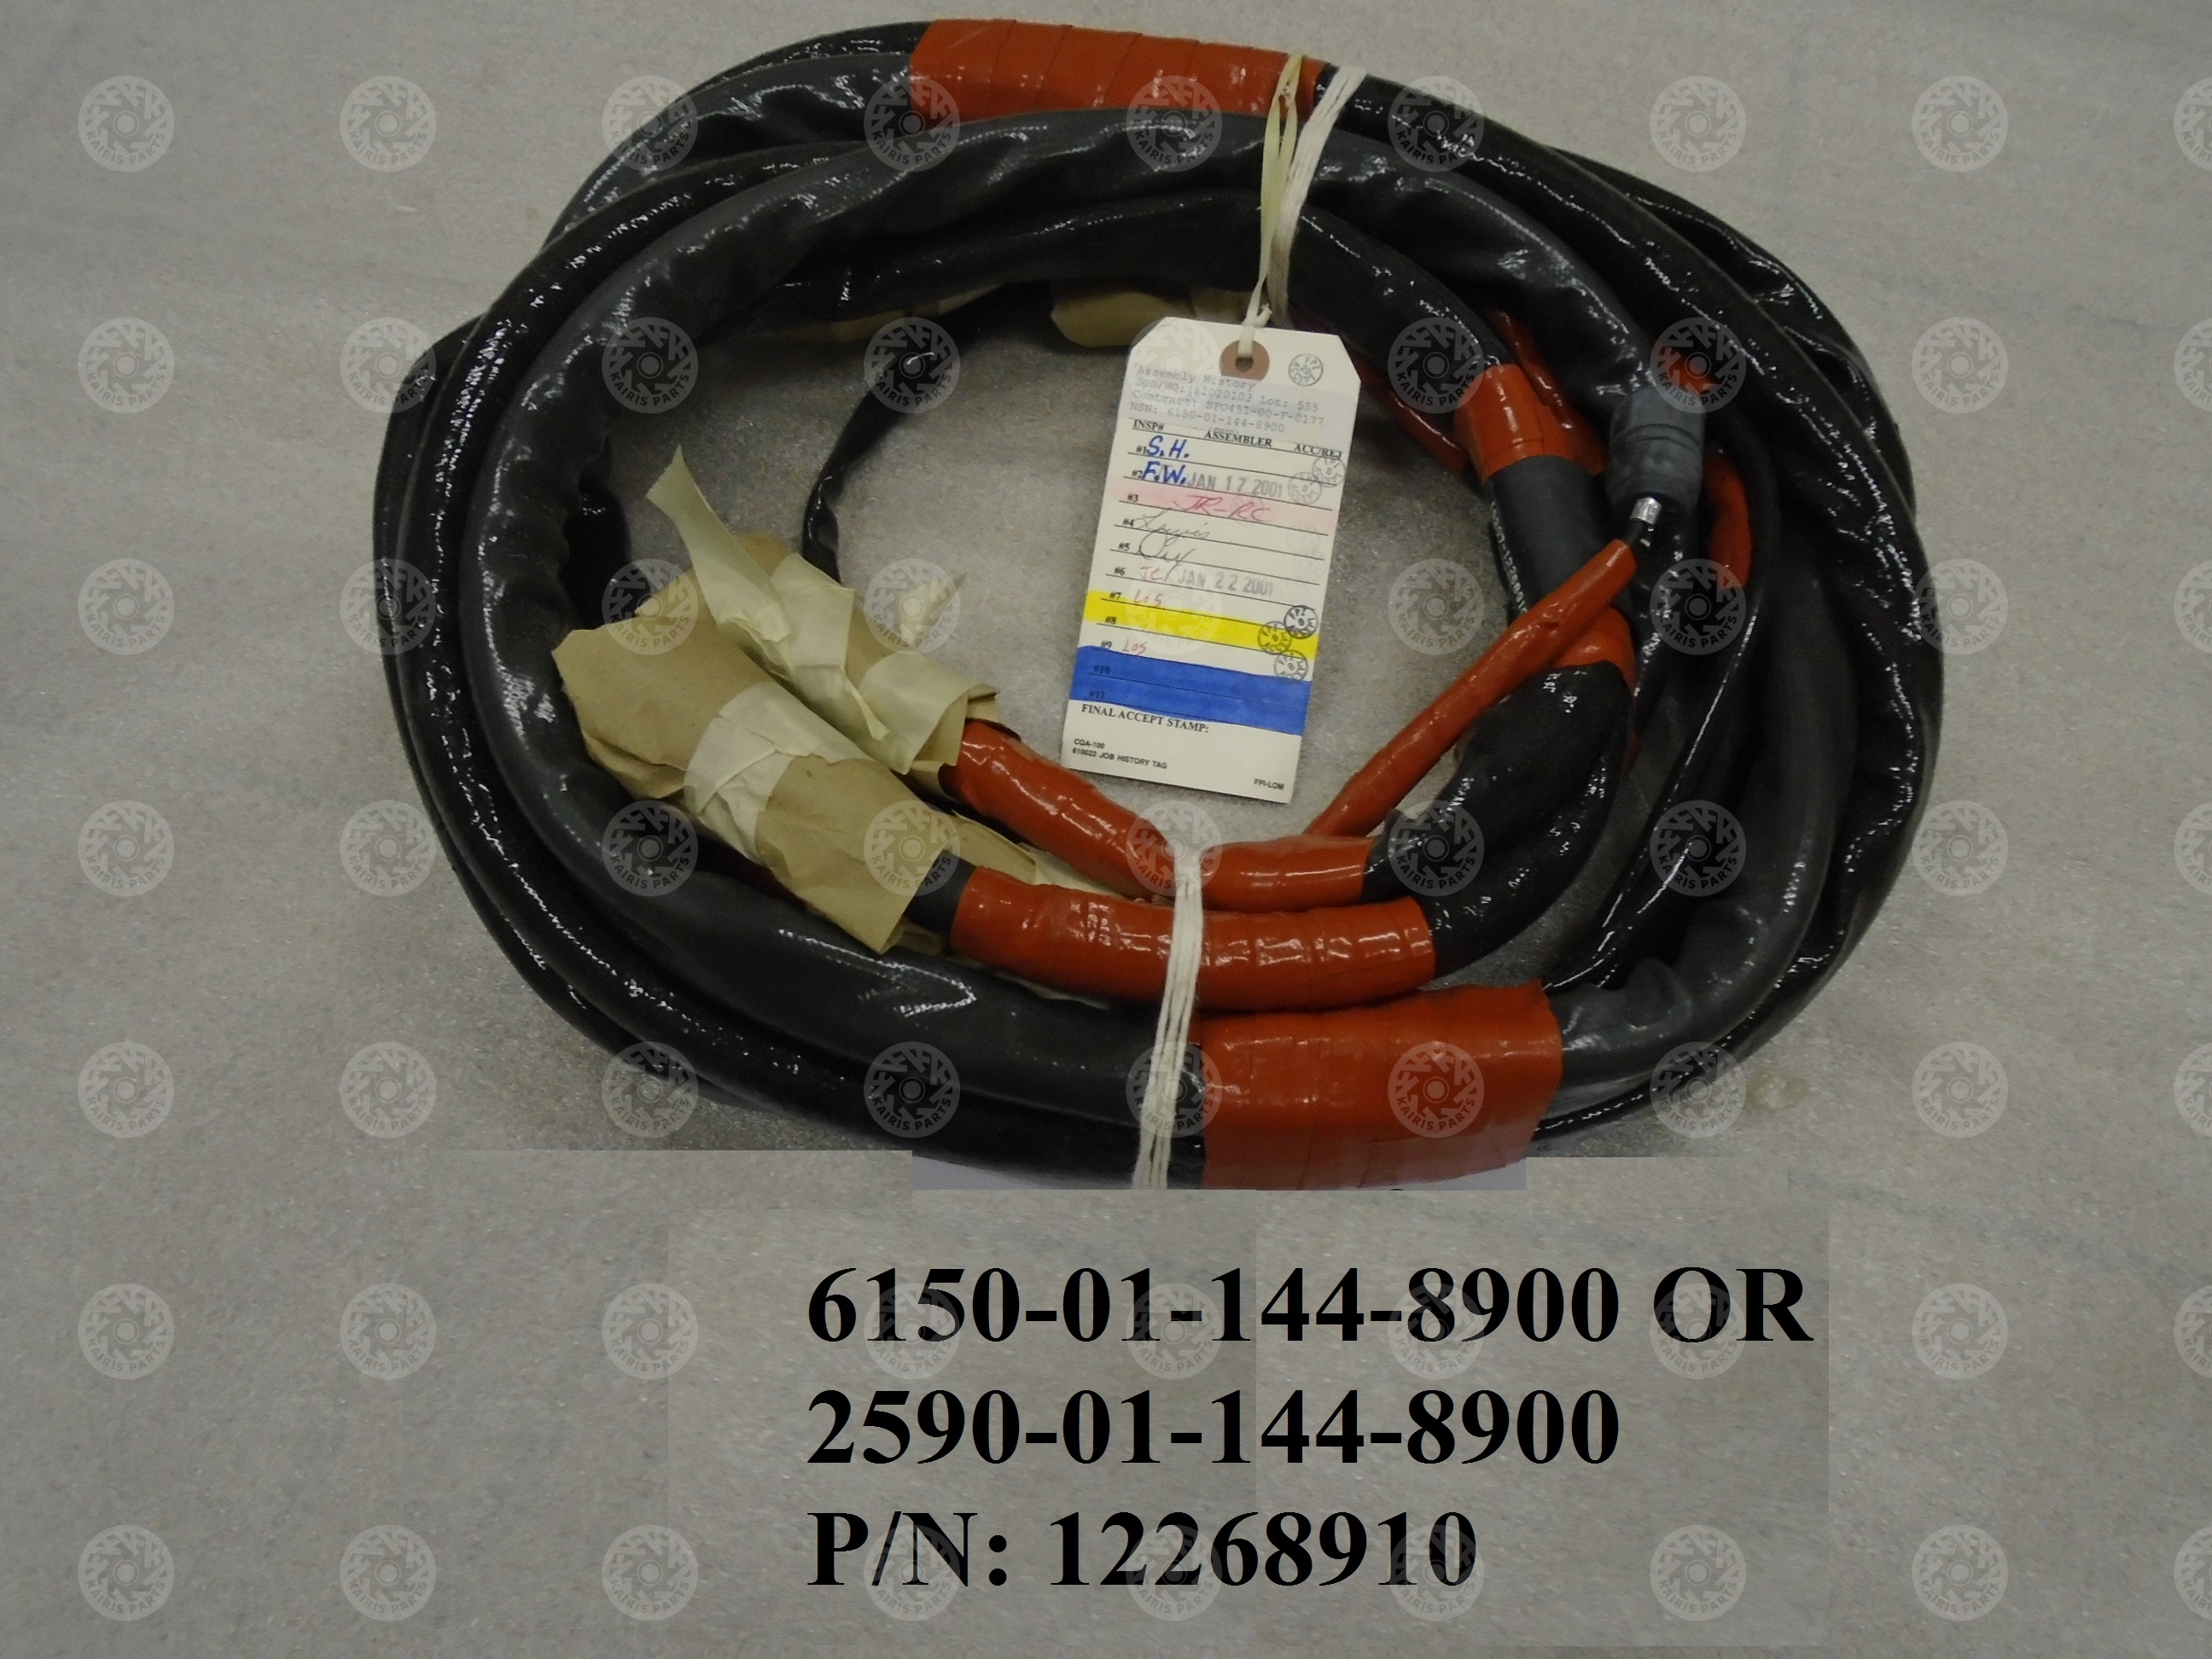 WIRING HARNESS,N NSN:6150-01-144-8900 - Kkairis military ... on wire lamp, wire sleeve, wire connector, wire antenna, wire cap, wire nut, wire holder, wire ball, wire leads, wire clothing,